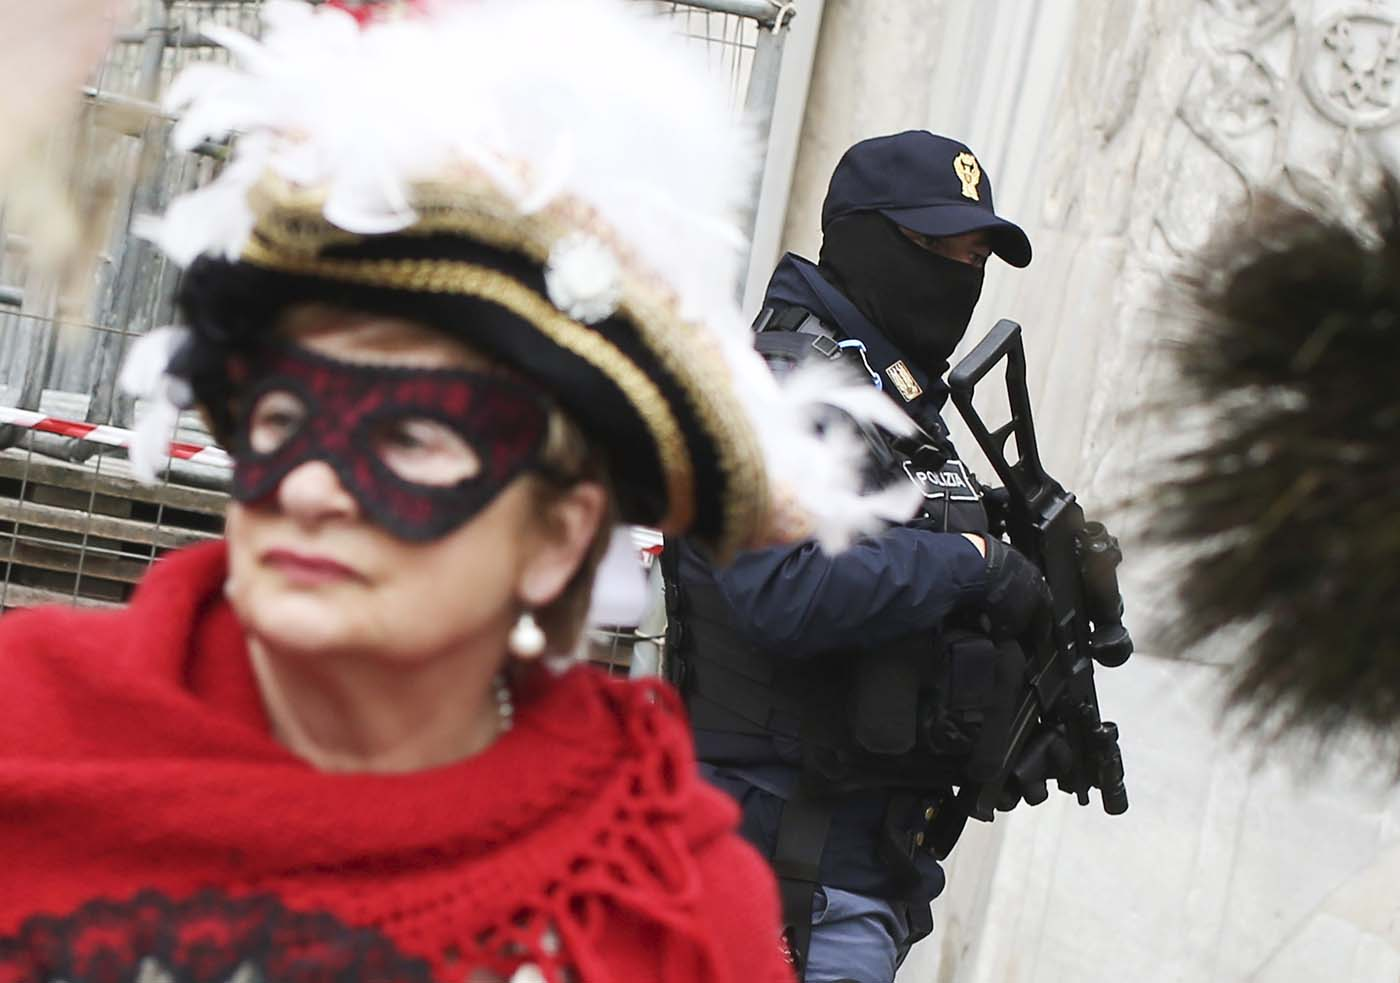 An Italian policeman (R) patrols as masked revellers arrive at San Marco Piazza during the Venice Carnival, January 31, 2016. REUTERS/Alessandro Bianchi